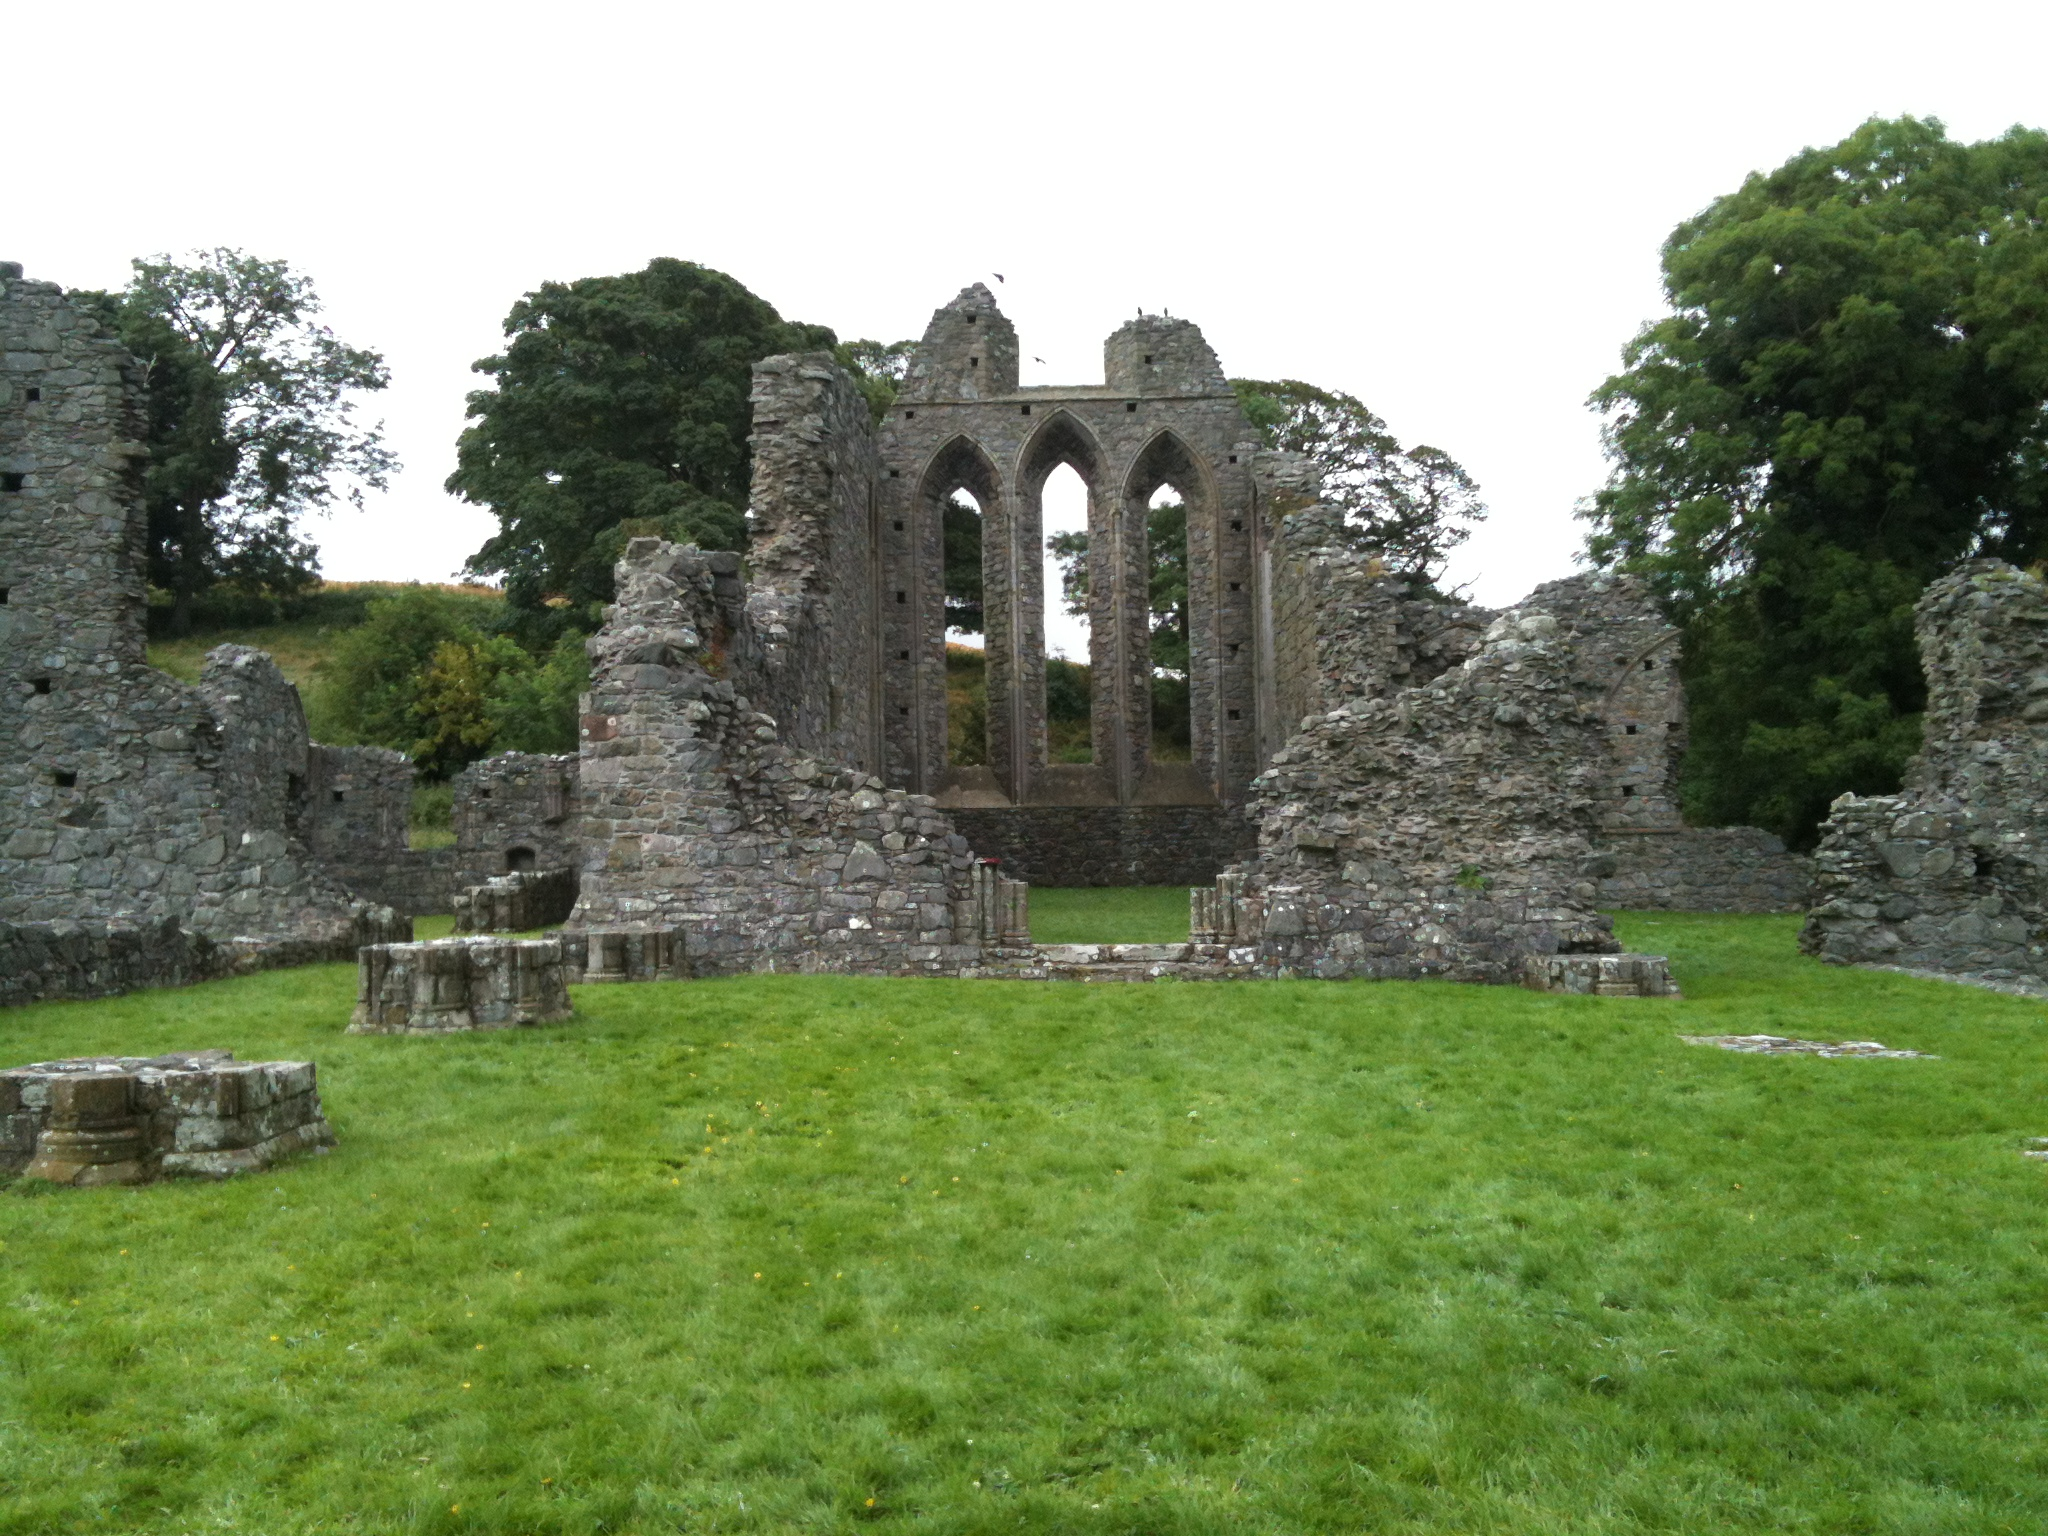 Ruins of Inch Abbey in Ireland